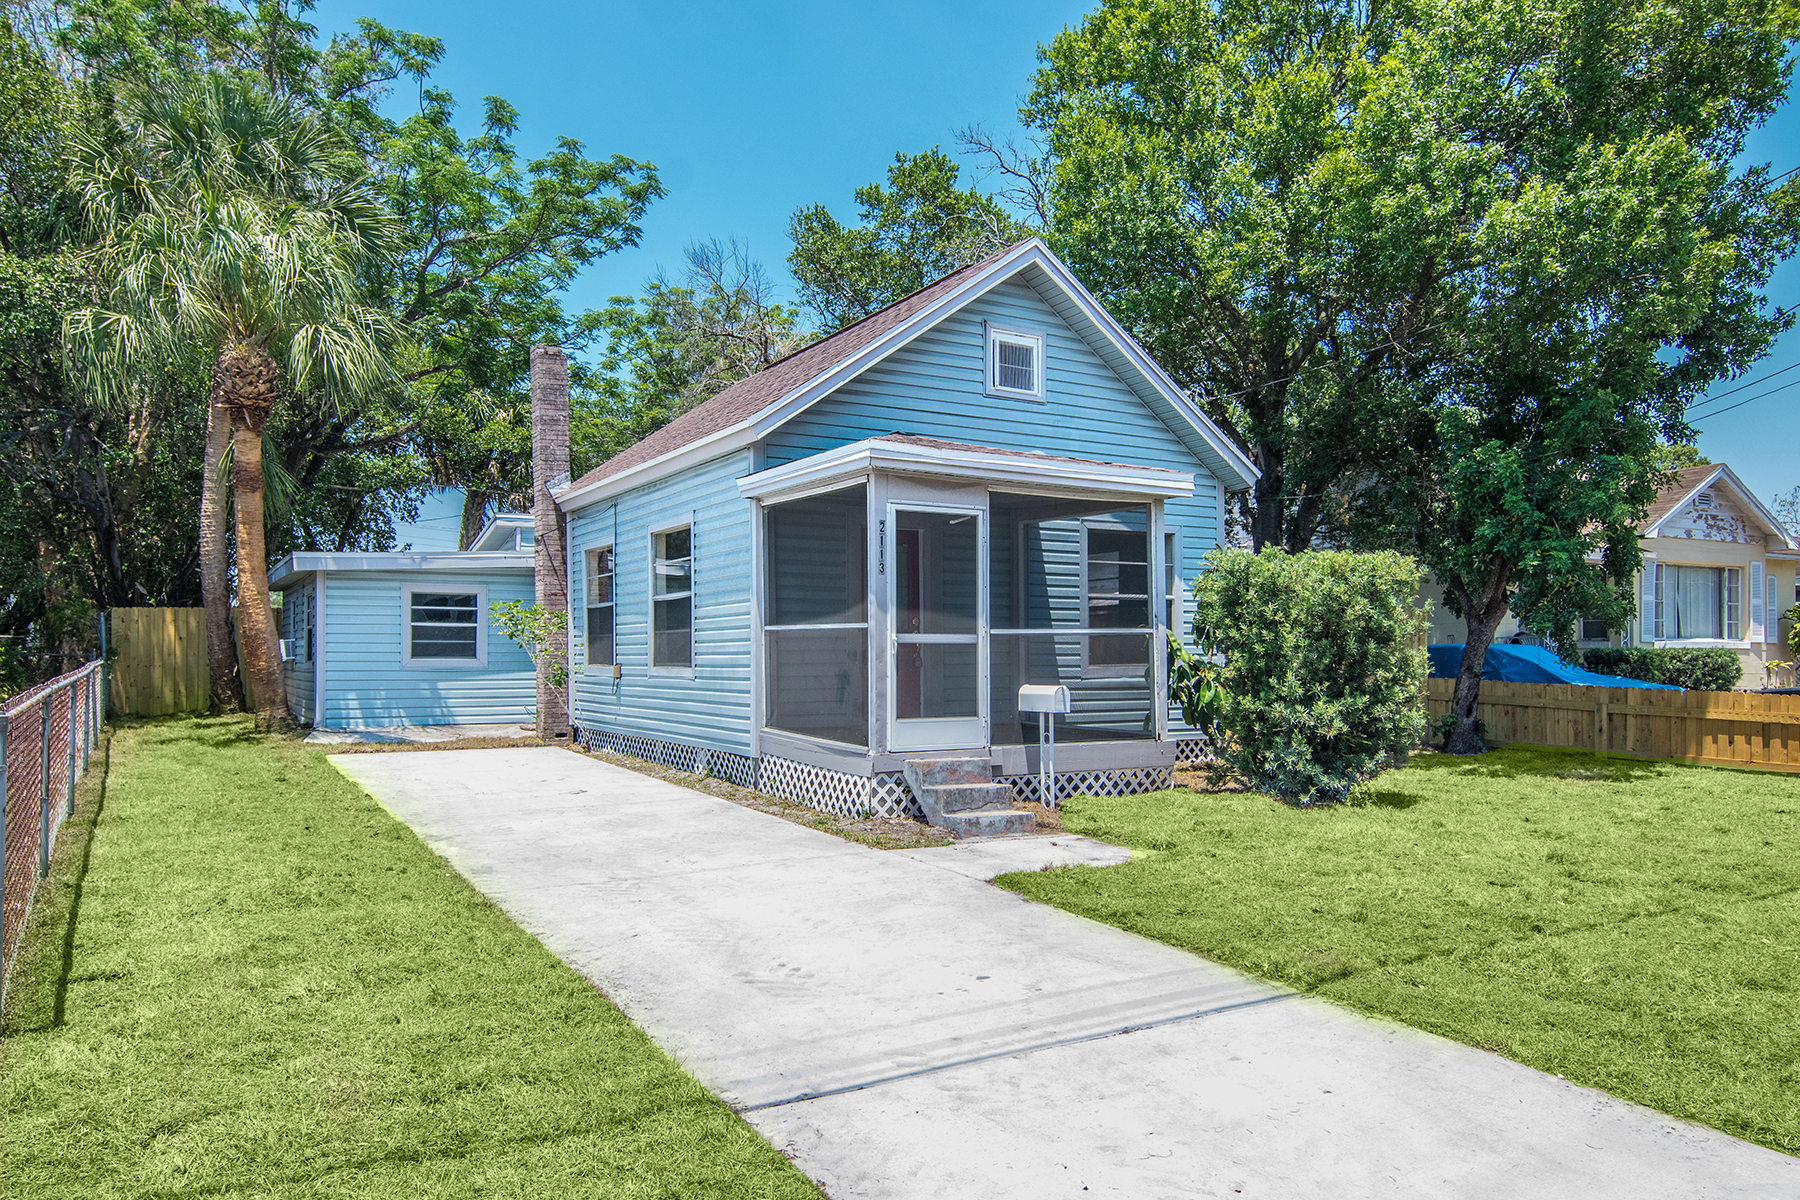 Single Family Home for Sale at TAMPA 2113 W State St, Tampa, Florida 33606 United States